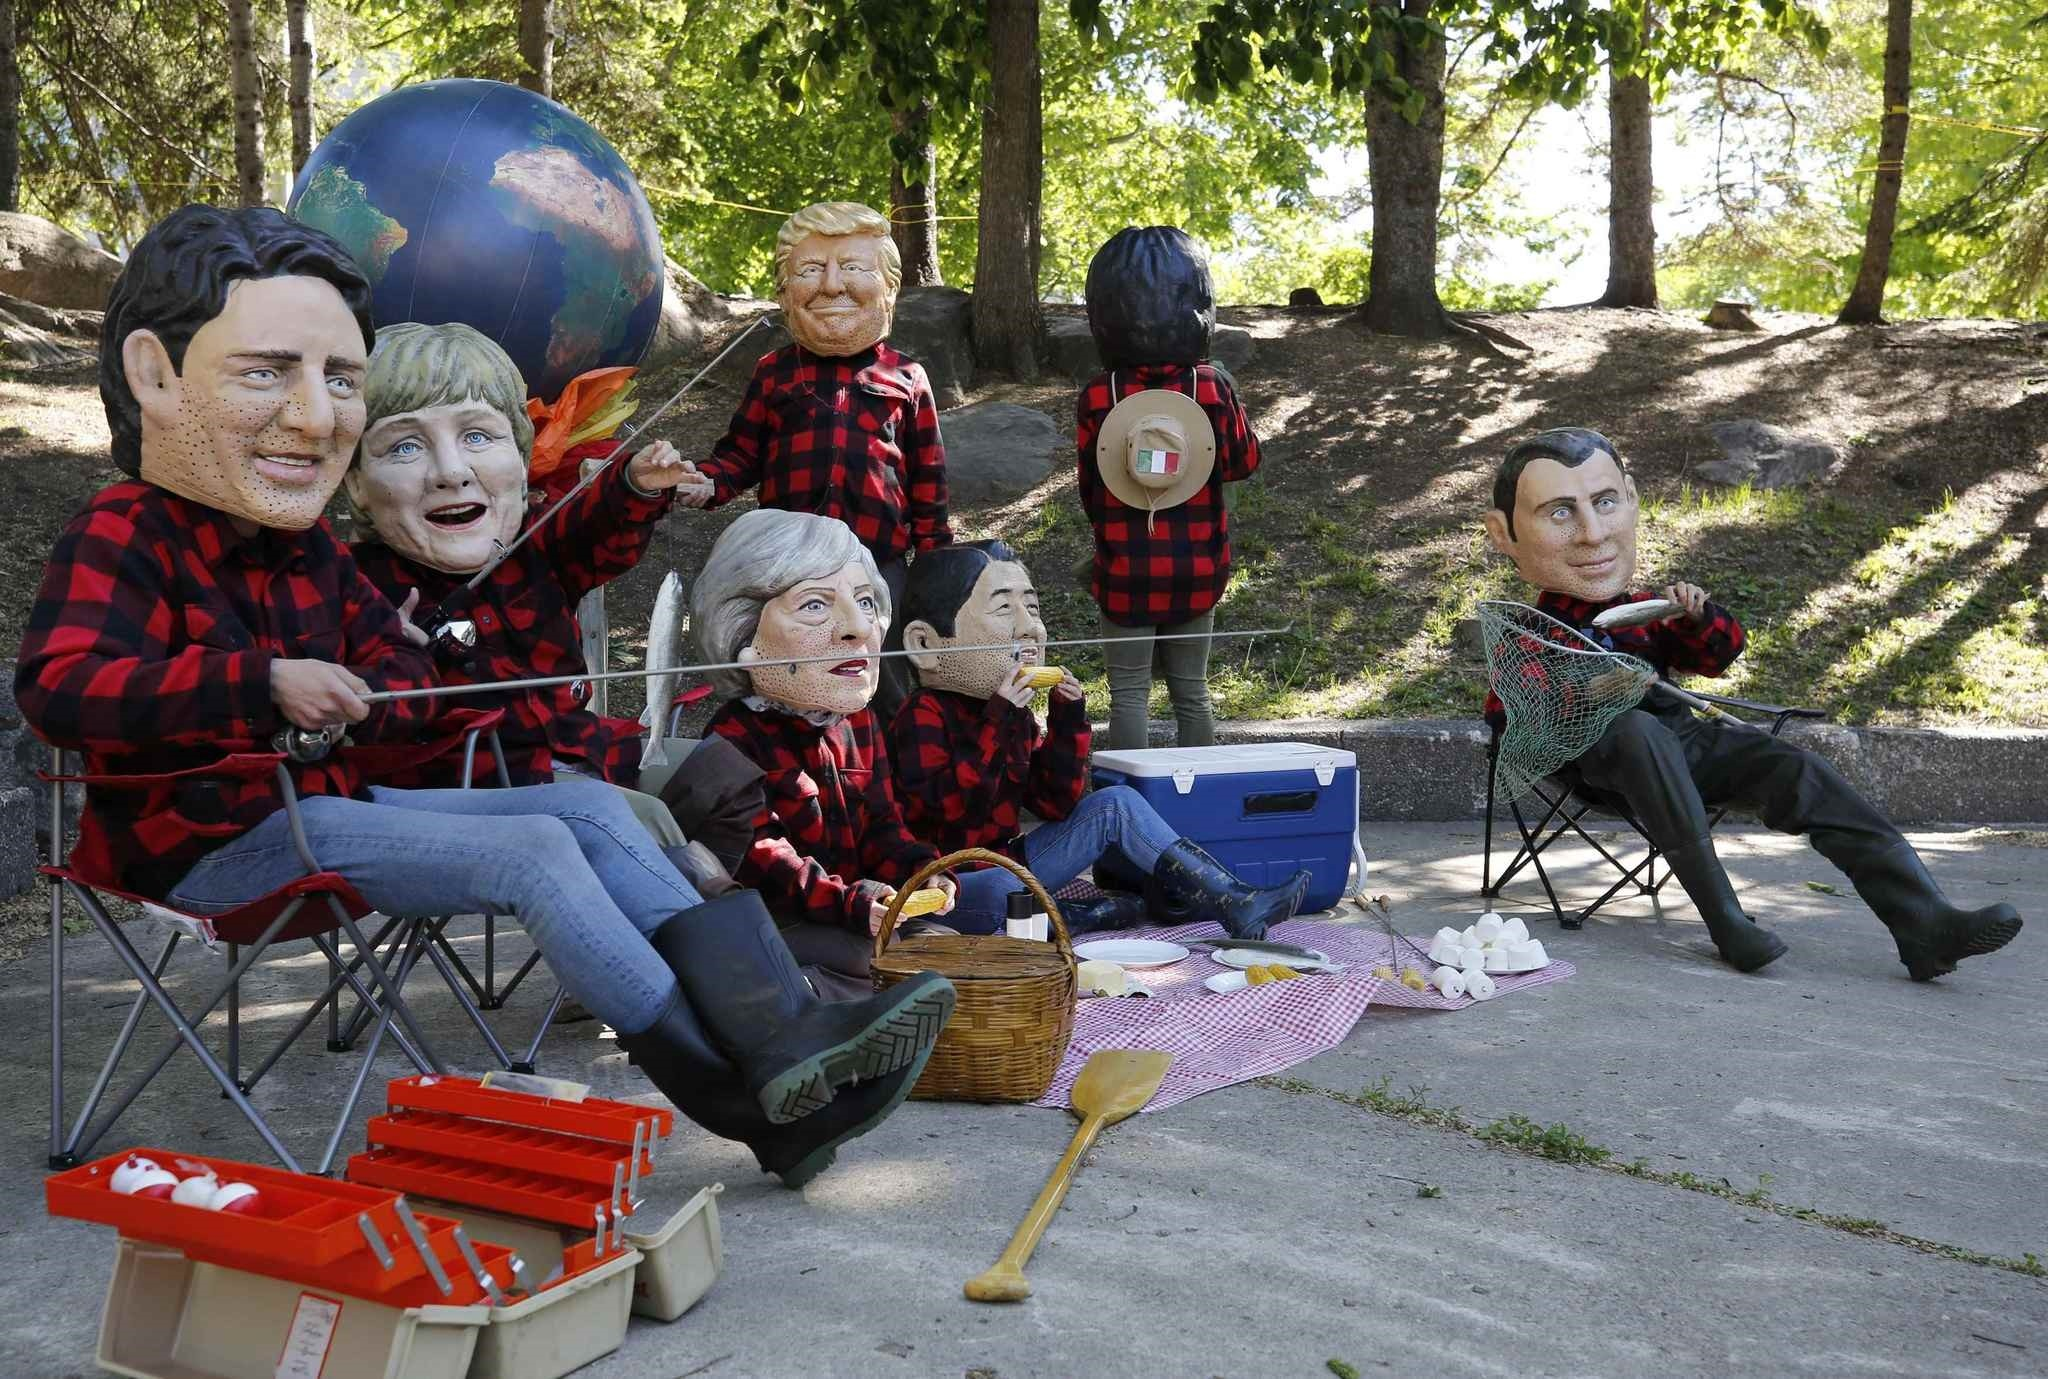 Protesters wearing giant papier mache heads depicting G7 leaders pose during a demonstration, Quebec, Canada, June 9.